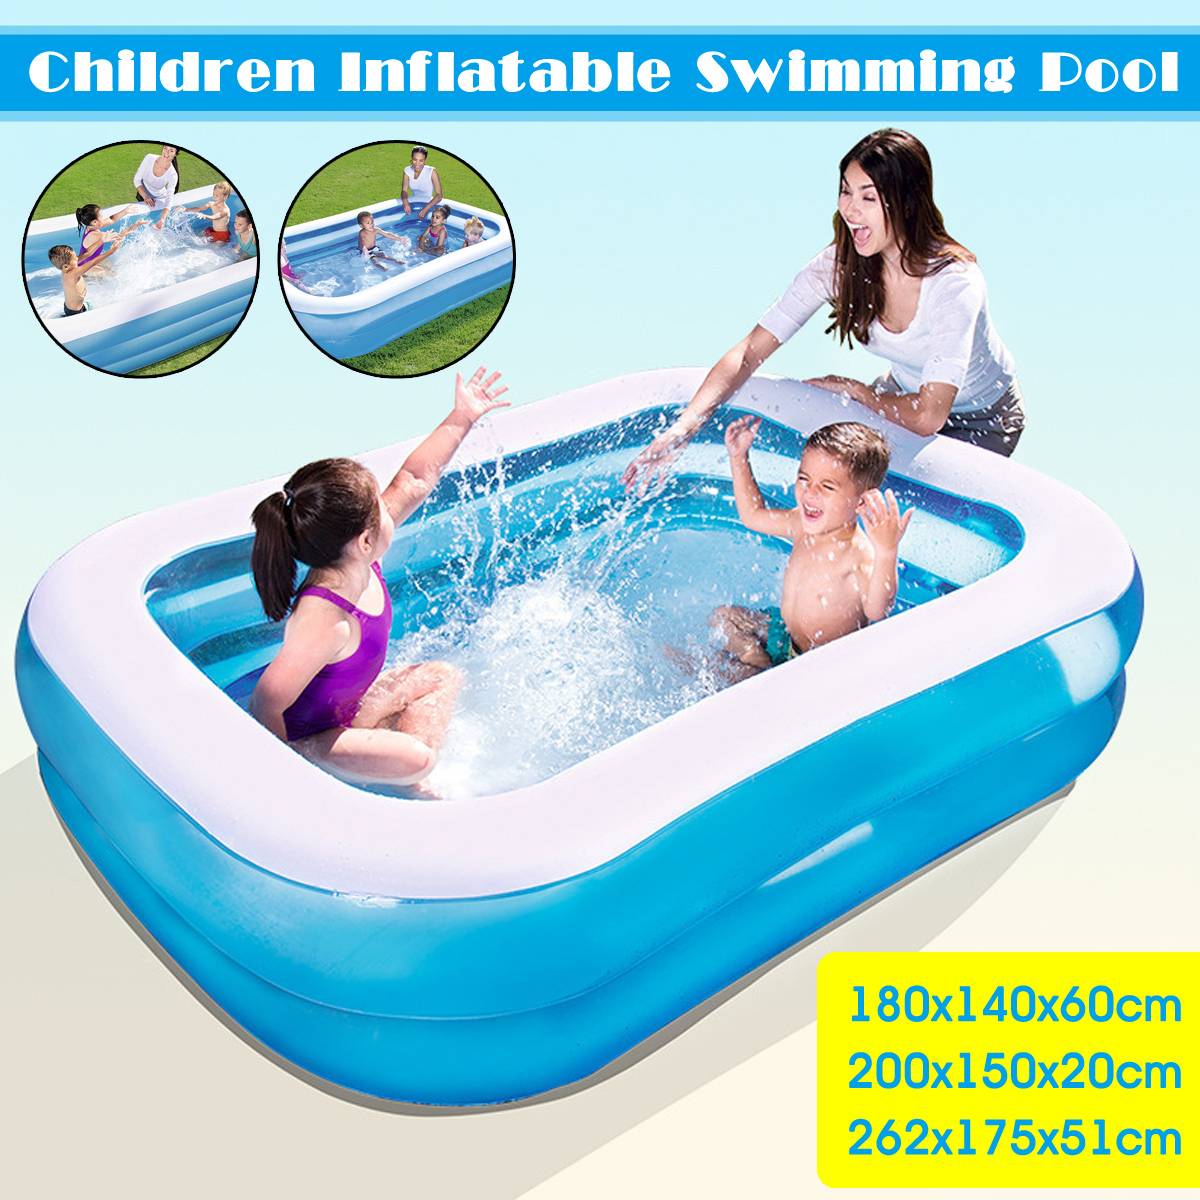 Children Inflatable Swimming Pool Large Family Summer Outdoor Play PVC Pool Kids